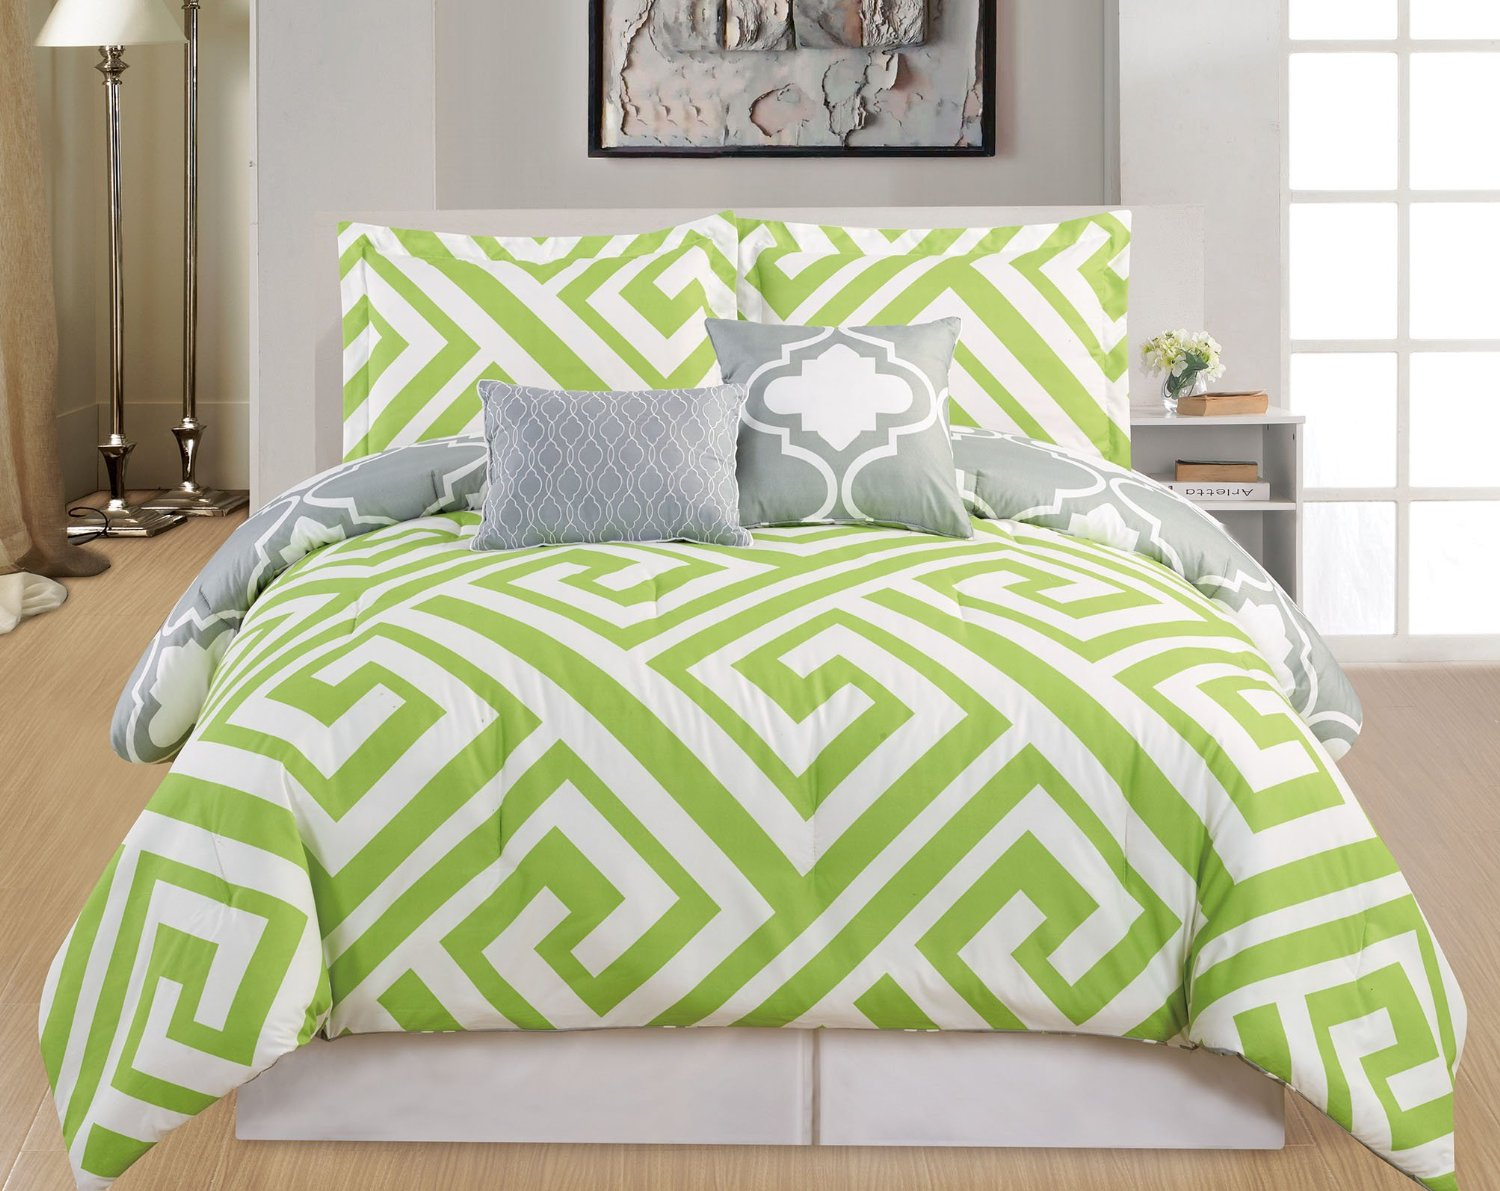 title | Lime Green Bedroom Set